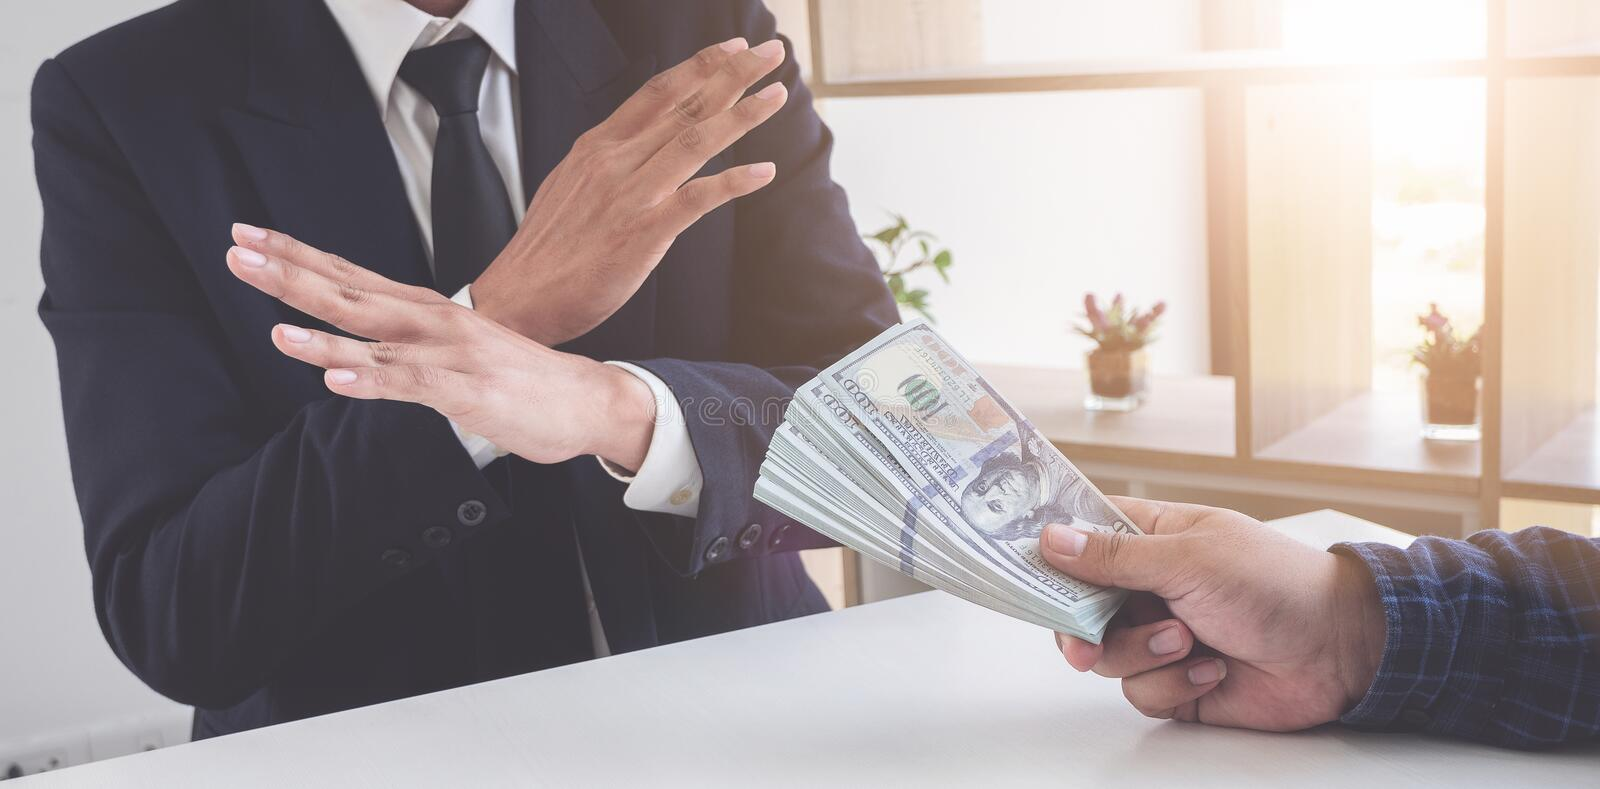 Business man refusing money to take the bribe the concept of corruption and anti bribery.  royalty free stock images